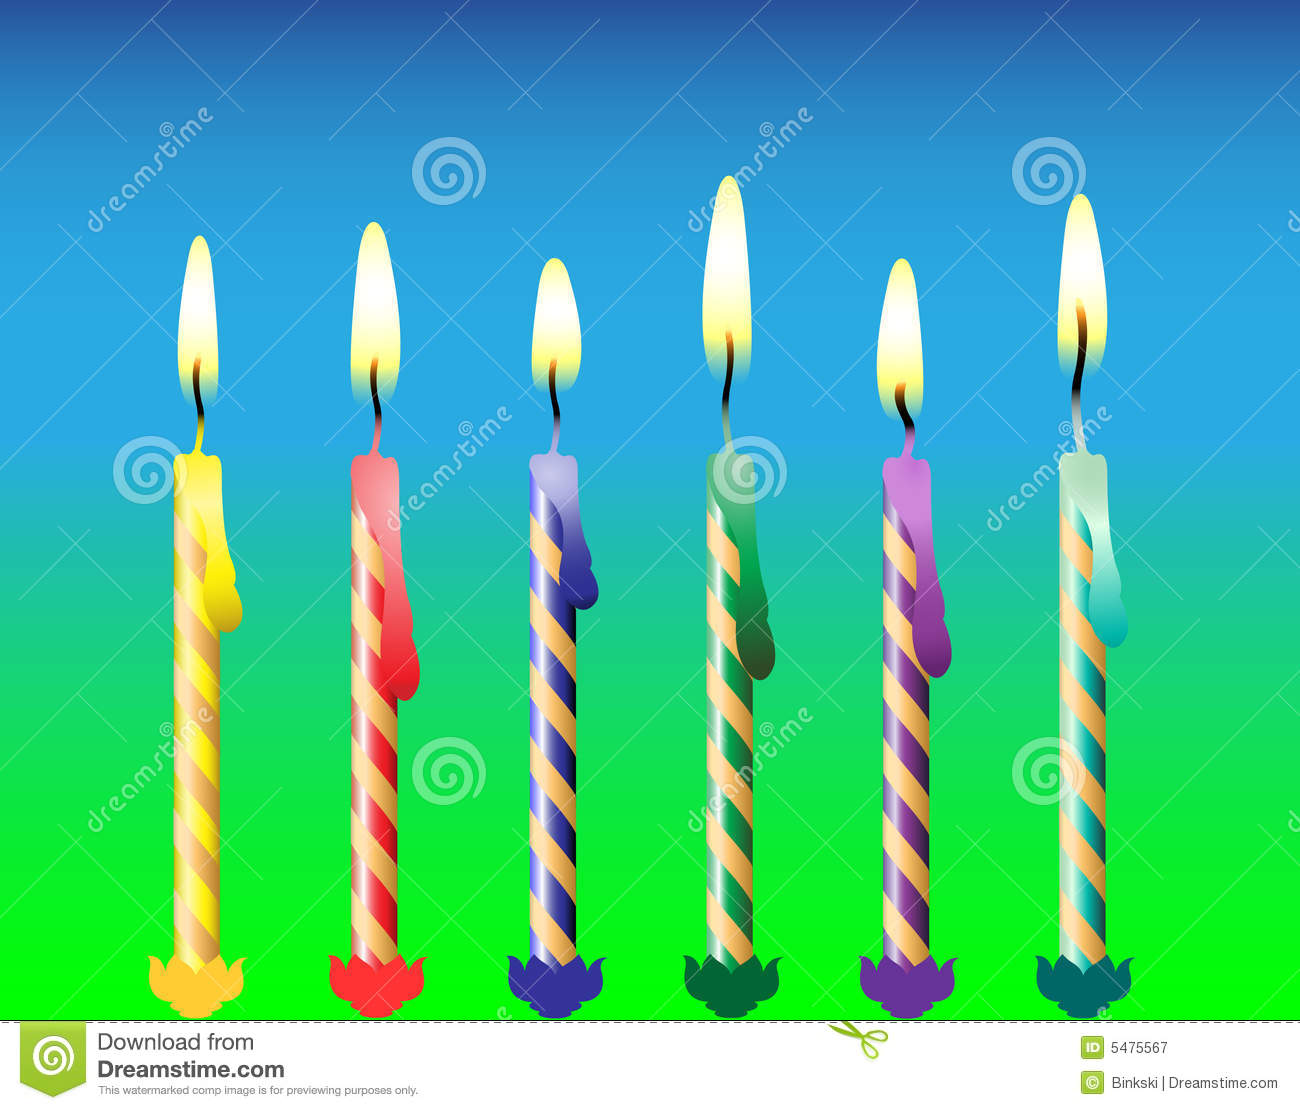 Six Candles Royalty Free Stock Photography Image 5475567